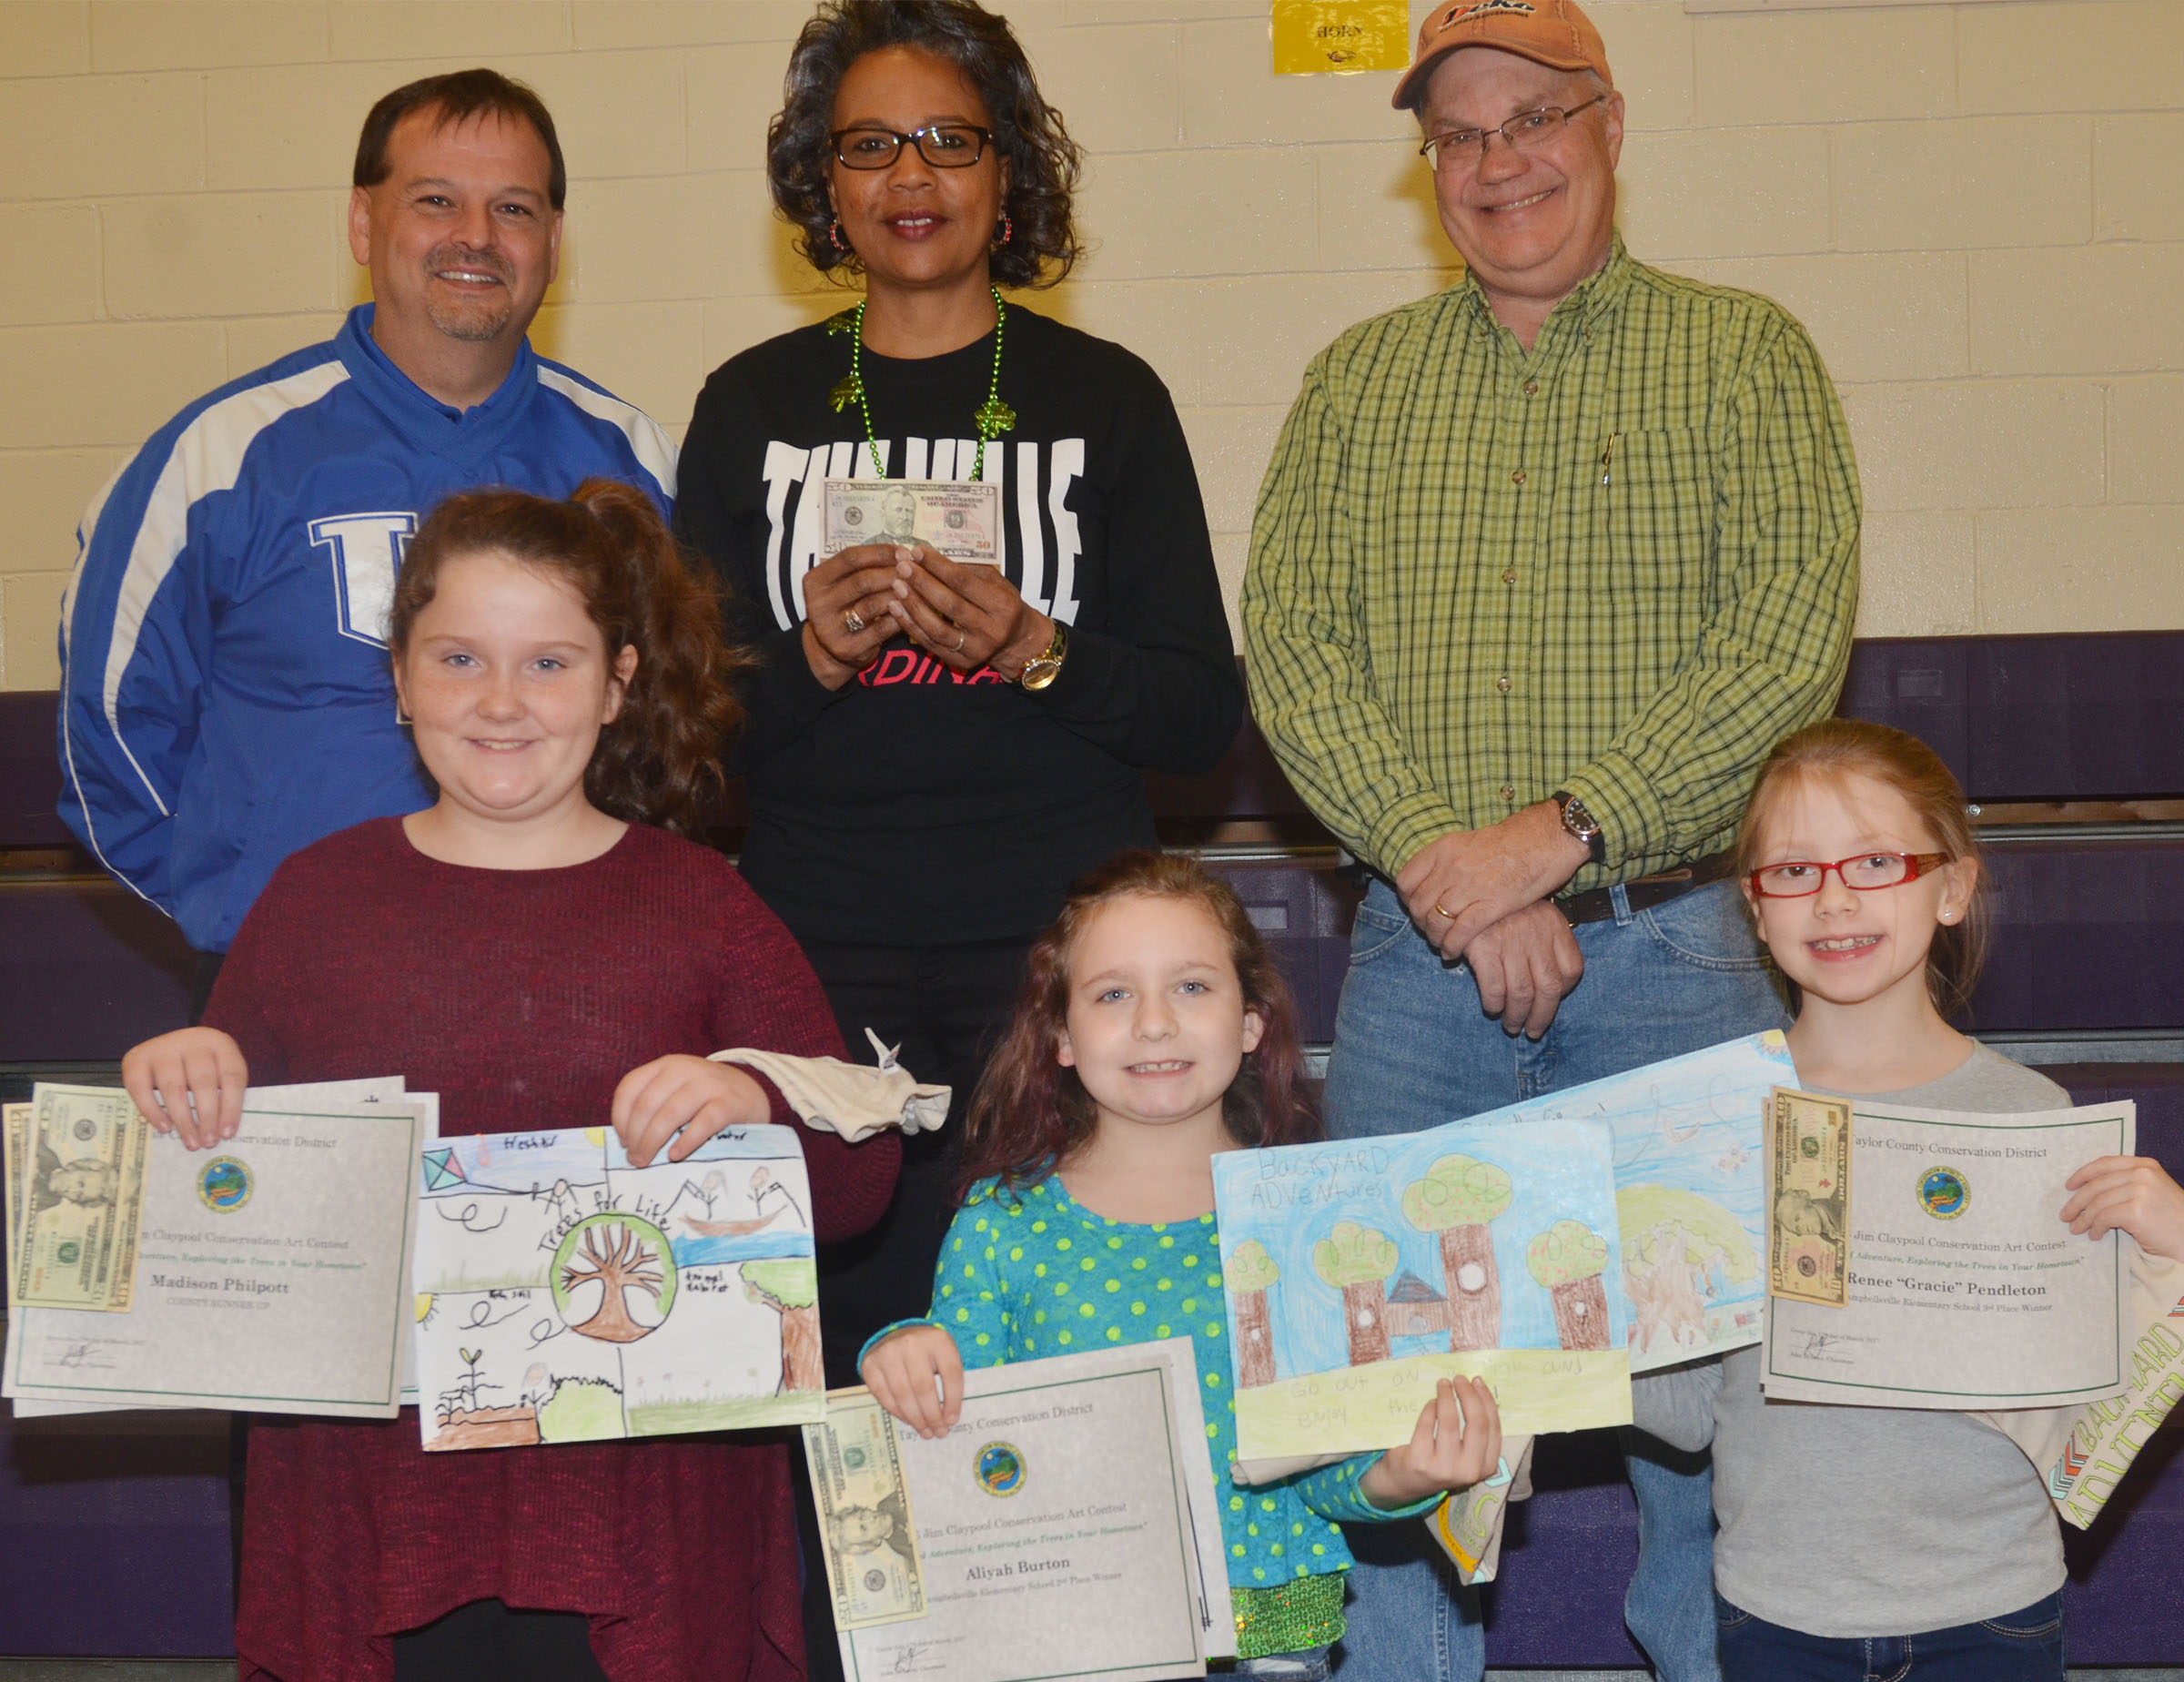 CES overall art competition winners include, from left, front, third-grader Madison Philpott, who was a classroom winner, CES first-place winner and the county runner-up; third-grader Aliyah Burton, who was a classroom winner and the CES second-place winner; and third-grader Gracie Pendleton, who was a classroom winner and the CES third-place winner. Back, CES Principal Ricky Hunt, third-grade teacher Doretha Sanders, who, as Philpott's teacher, receives $50 for classroom supplies, and Taylor County Conservation District Board Member Barry Smith.